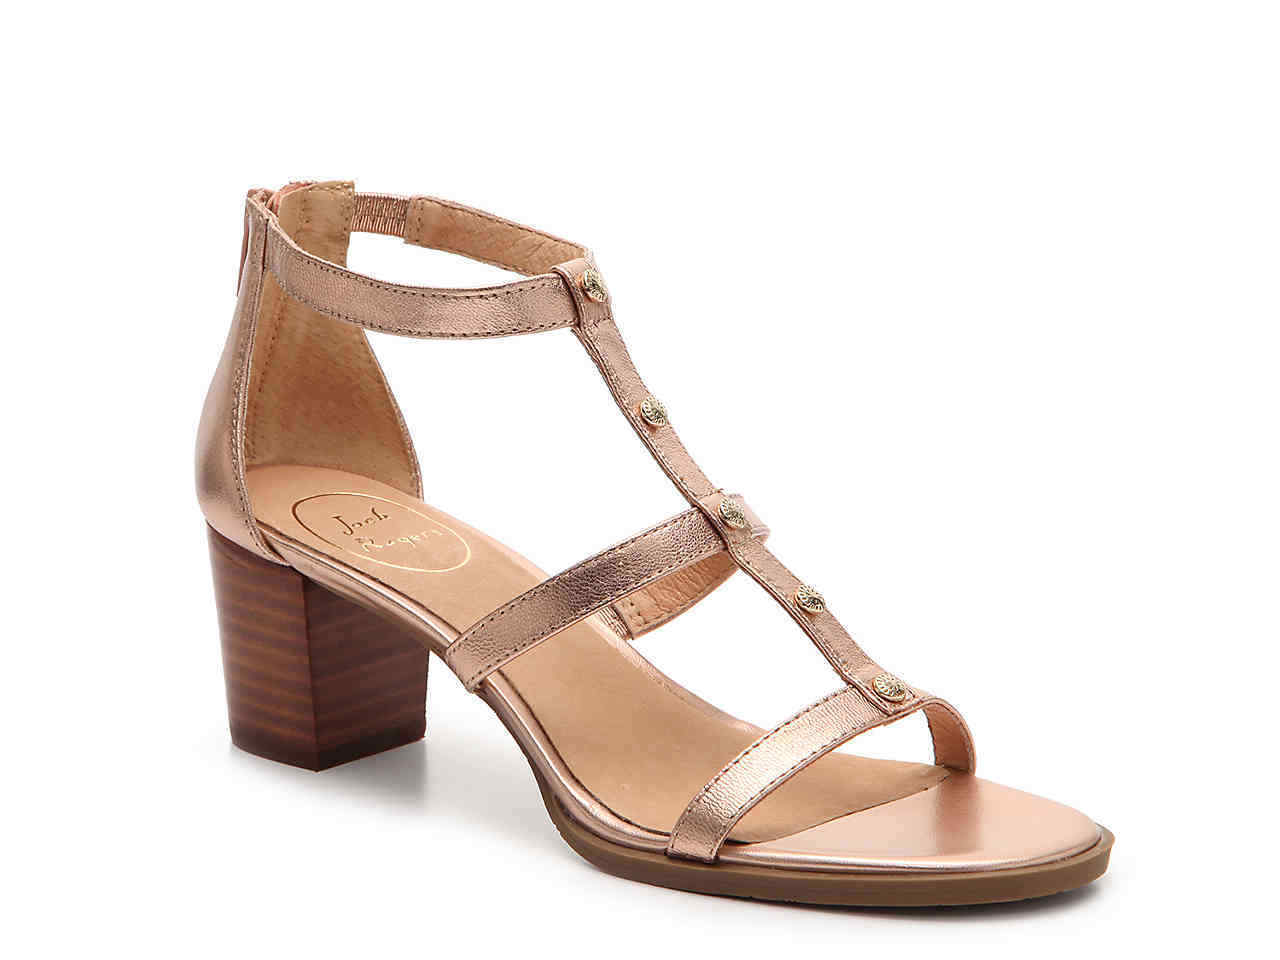 Jack Rogers Dress Gladiator Sandals Julia Block Heel Rose Gold